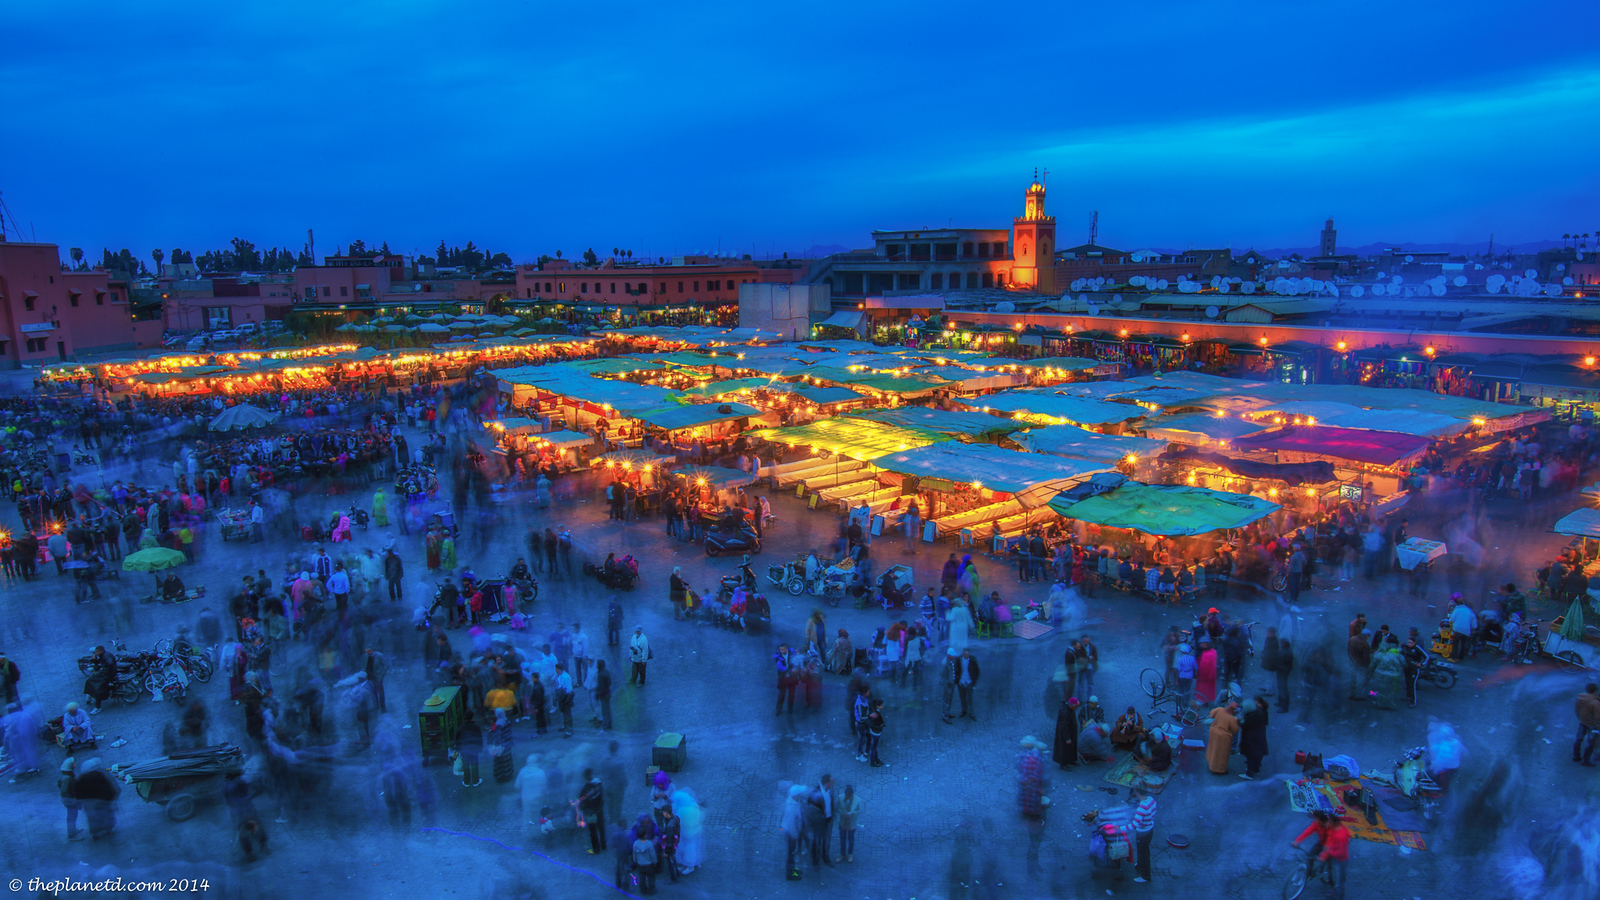 The Main square in Marrakech known as Jemaa-El-Fnaa